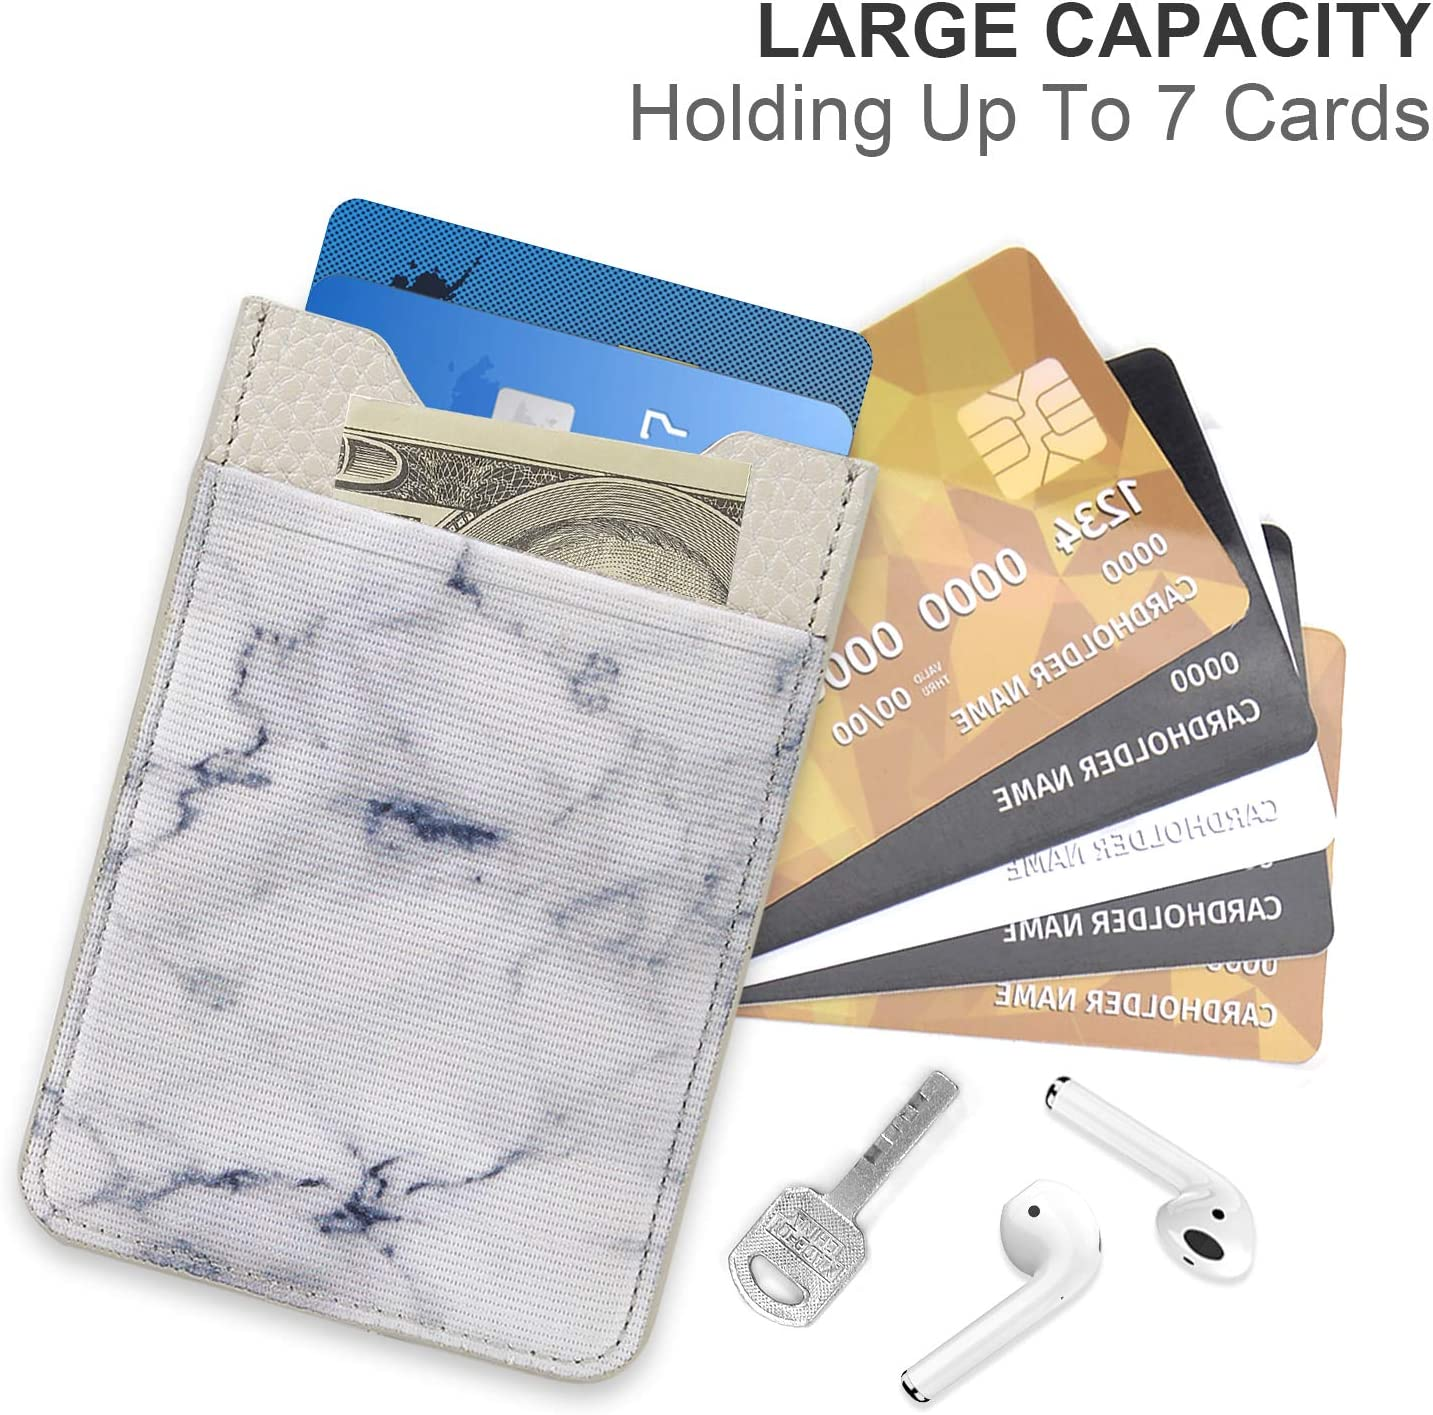 Stick on Wallet for Elastic Business Card Credit Card Holder Compatible with iPhone SHANSHUI Phone Card Holder Paisley// 2pcs All Most Smartphones